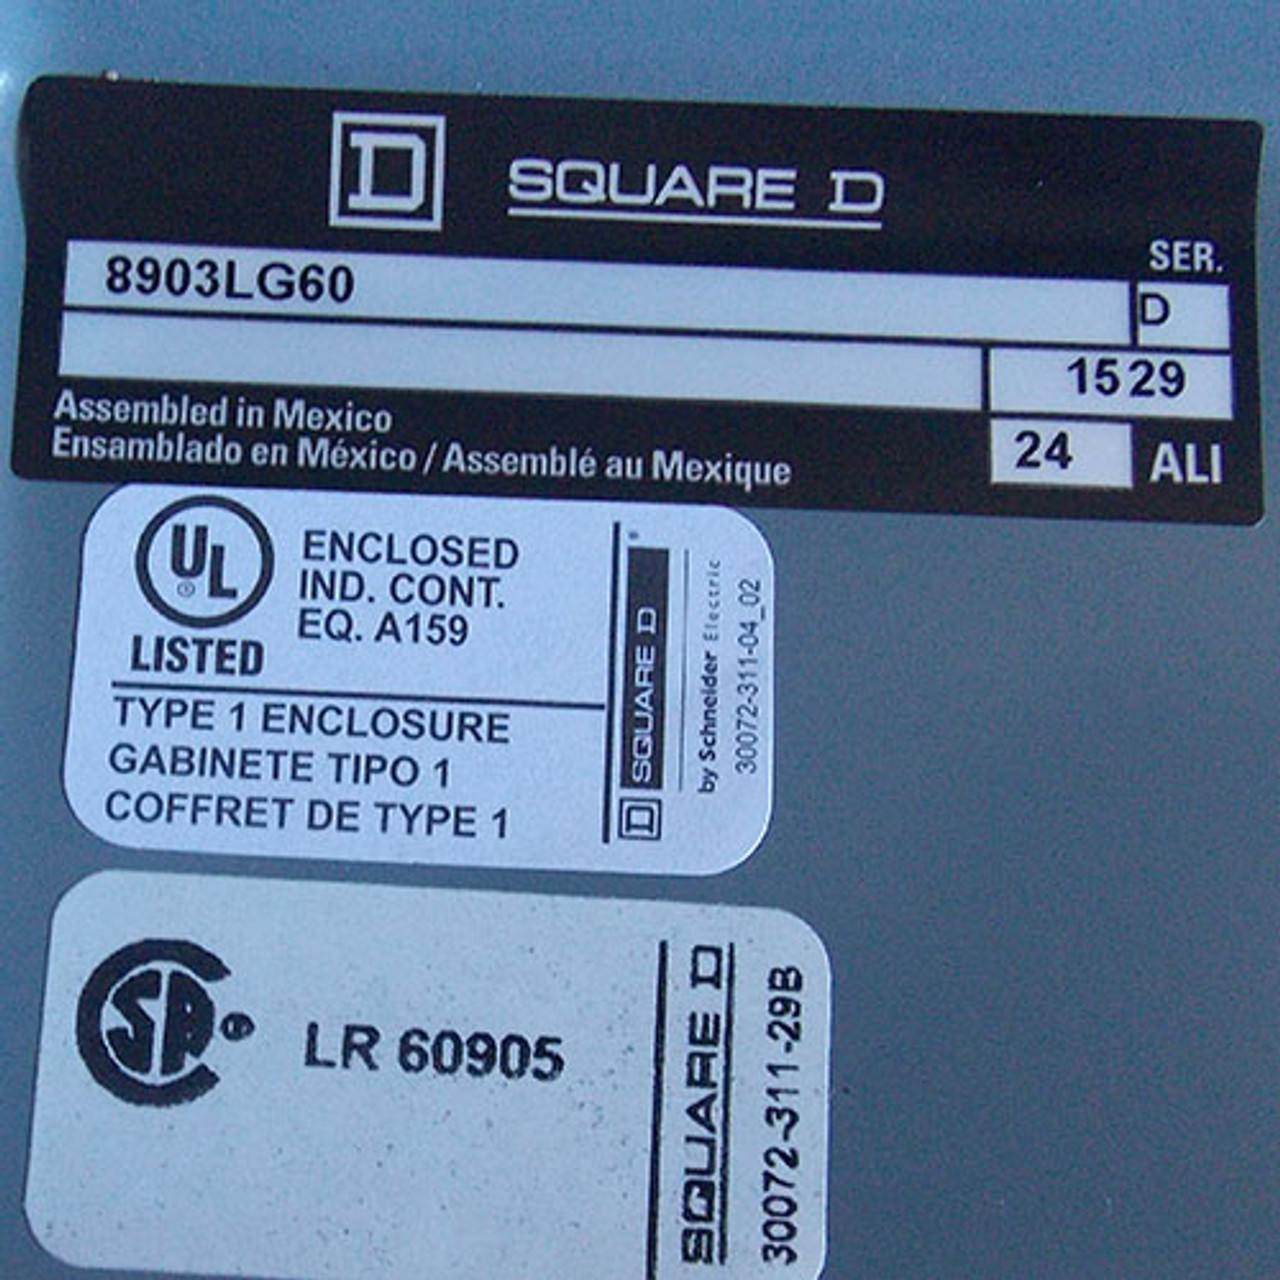 Square D 8903-LG60 Lighting Contactor 6 Pole 30 Amp 120V Coil Nema 1 - New